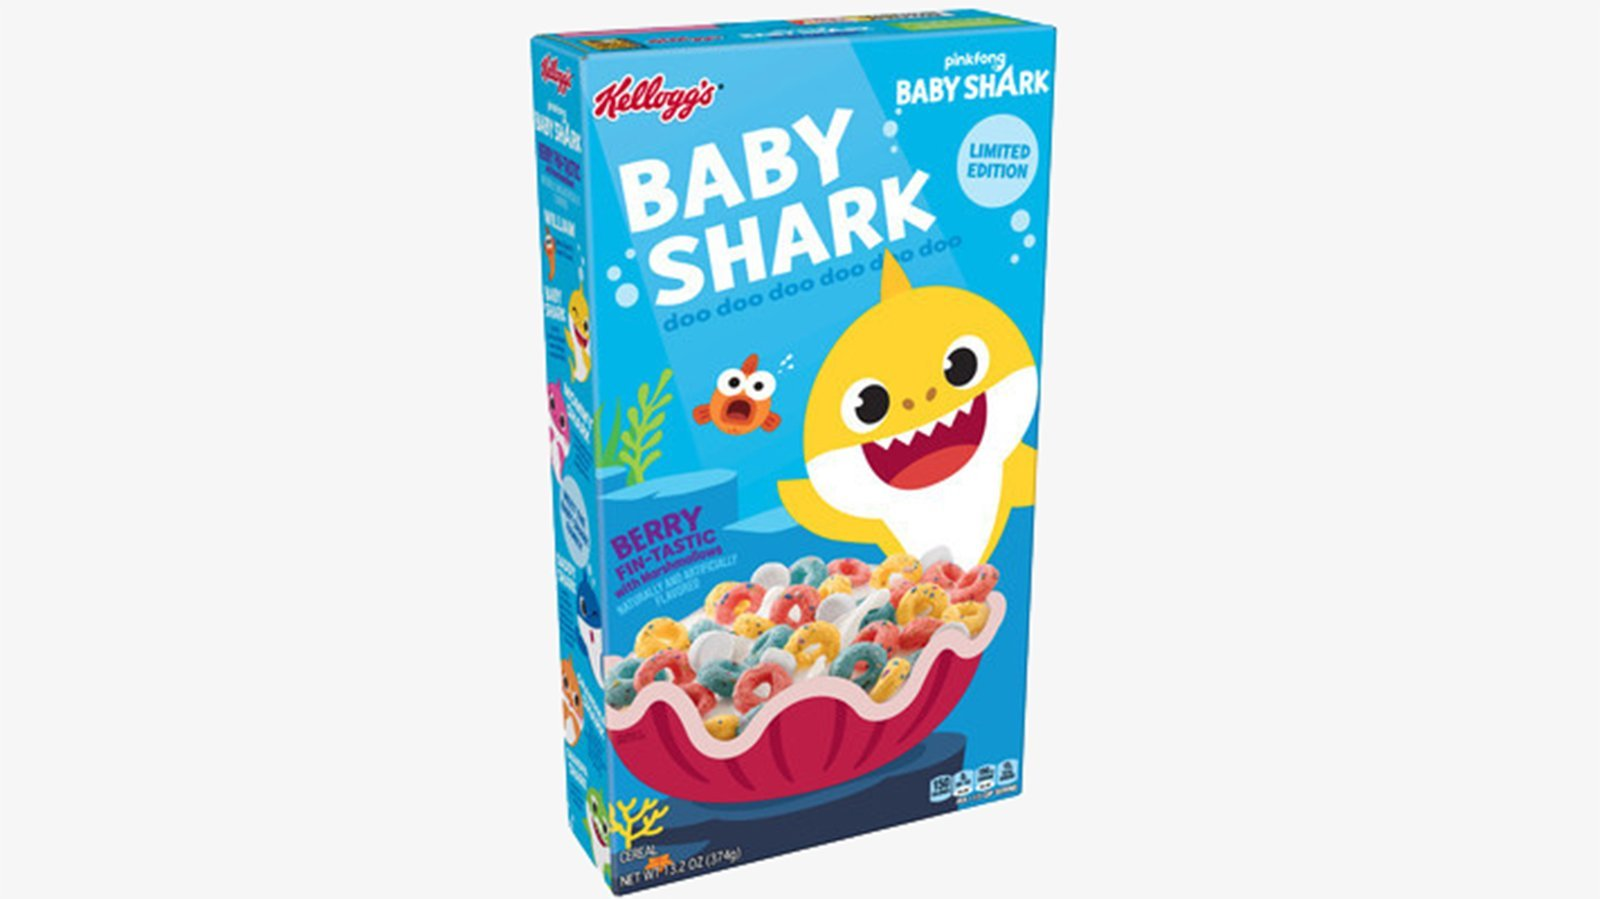 Picture of Baby Shark Cereal